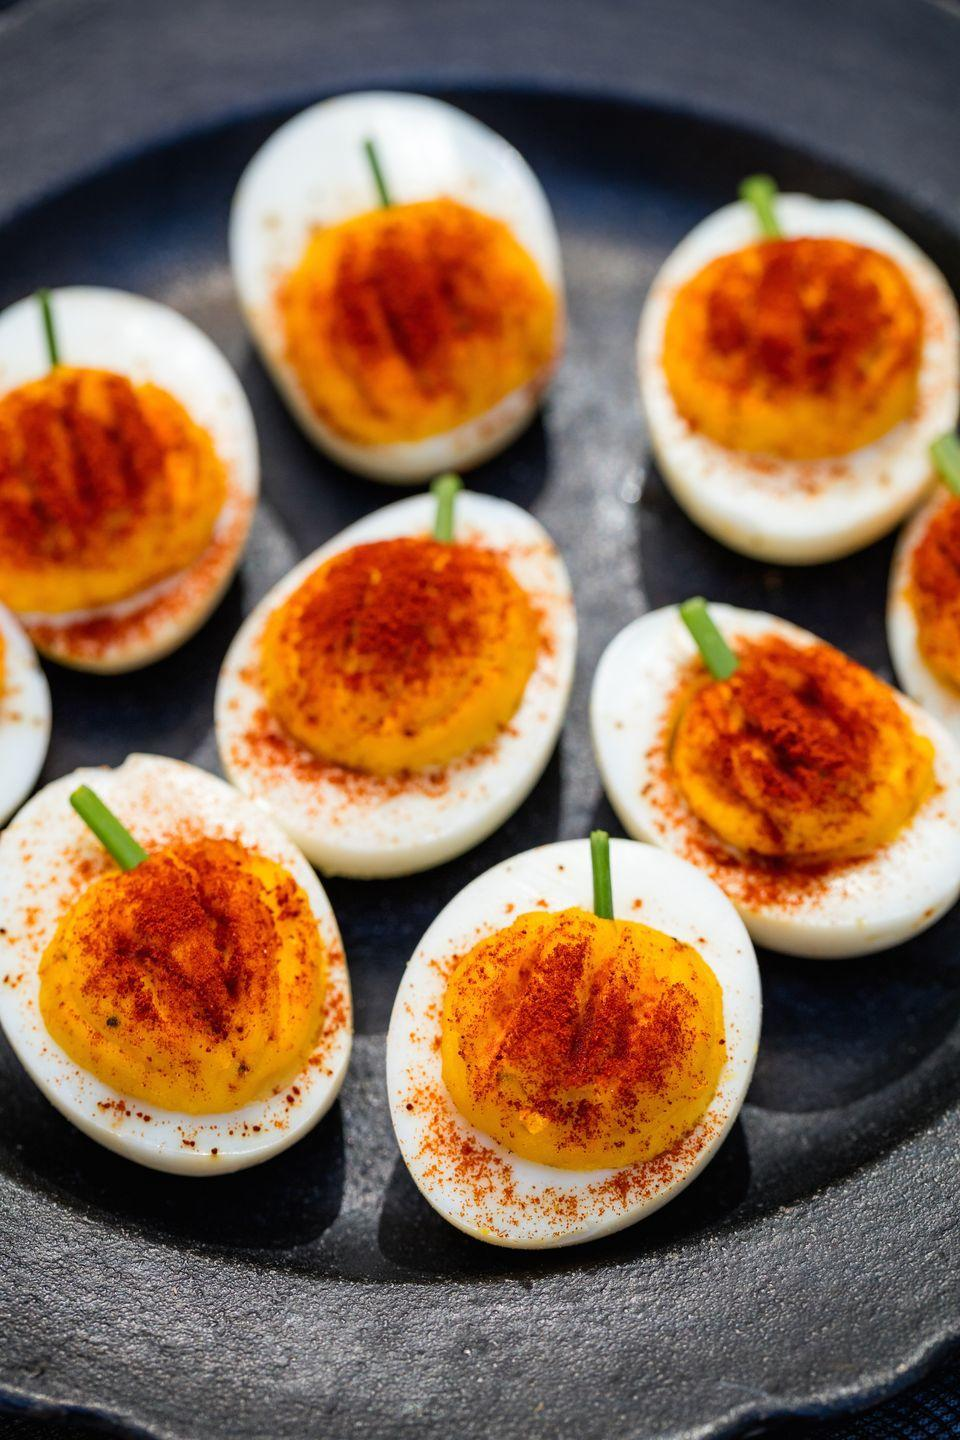 "<p>These pumpkin deviled eggs are way easier to make than a jack-o'-lantern. Paprika gives each its bold color, while a fresh chive makes for the perfect stem.</p><p>Get the recipe from <a href=""https://www.delish.com/cooking/recipe-ideas/recipes/a44140/pumpkin-deviled-eggs-recipe/"" rel=""nofollow noopener"" target=""_blank"" data-ylk=""slk:Delish"" class=""link rapid-noclick-resp"">Delish</a>.</p>"